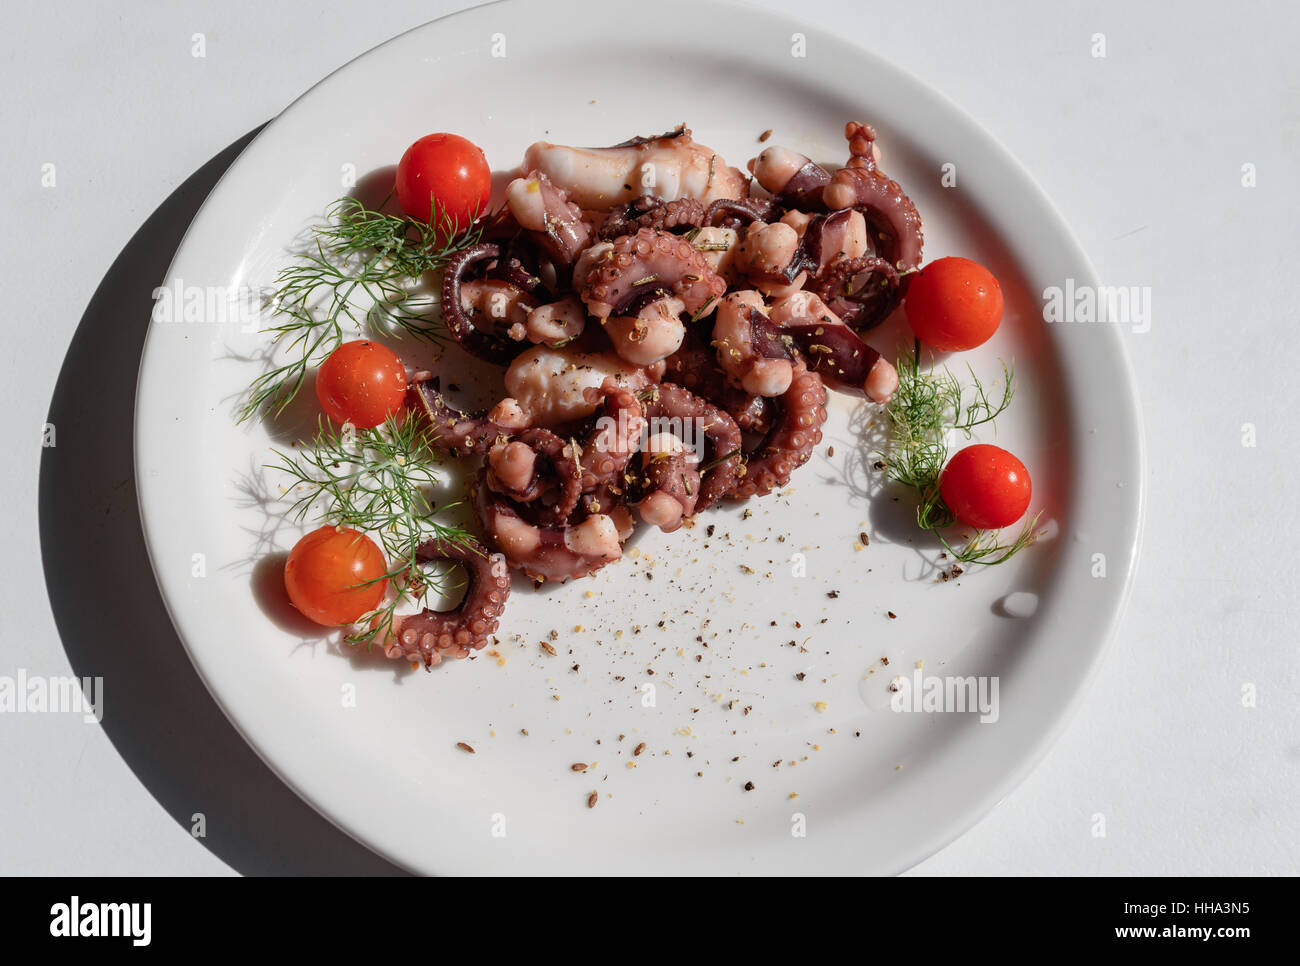 fried in olive oil, octopus tentacles with cherry tomatoes and spices served on white plate Stock Photo